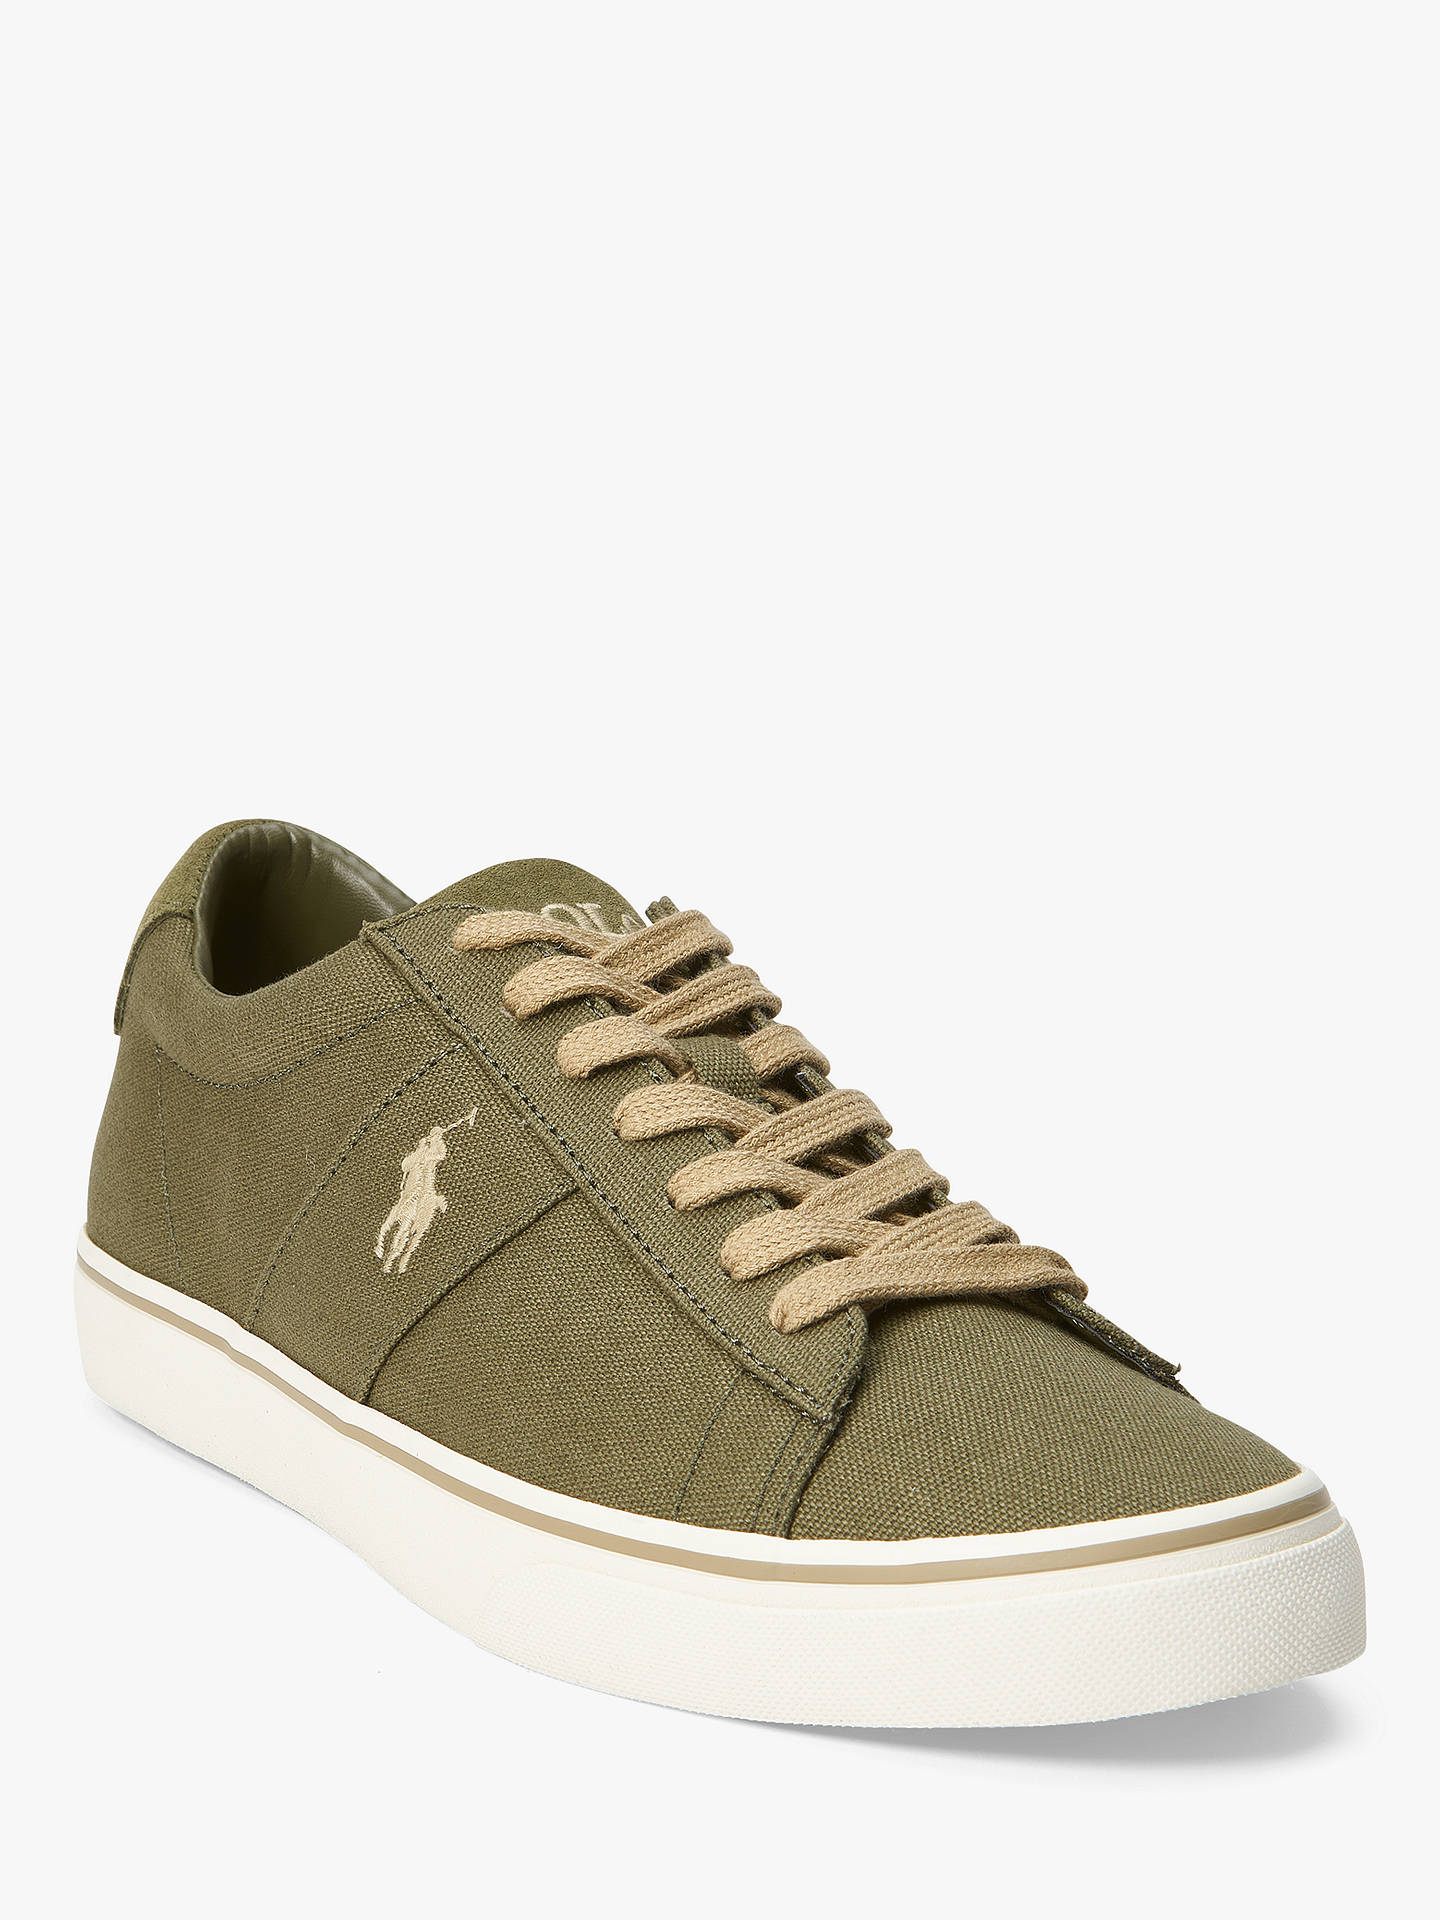 BuyPolo Ralph Lauren Sayer Canvas Trainers, Field Sage, 9 Online at johnlewis.com